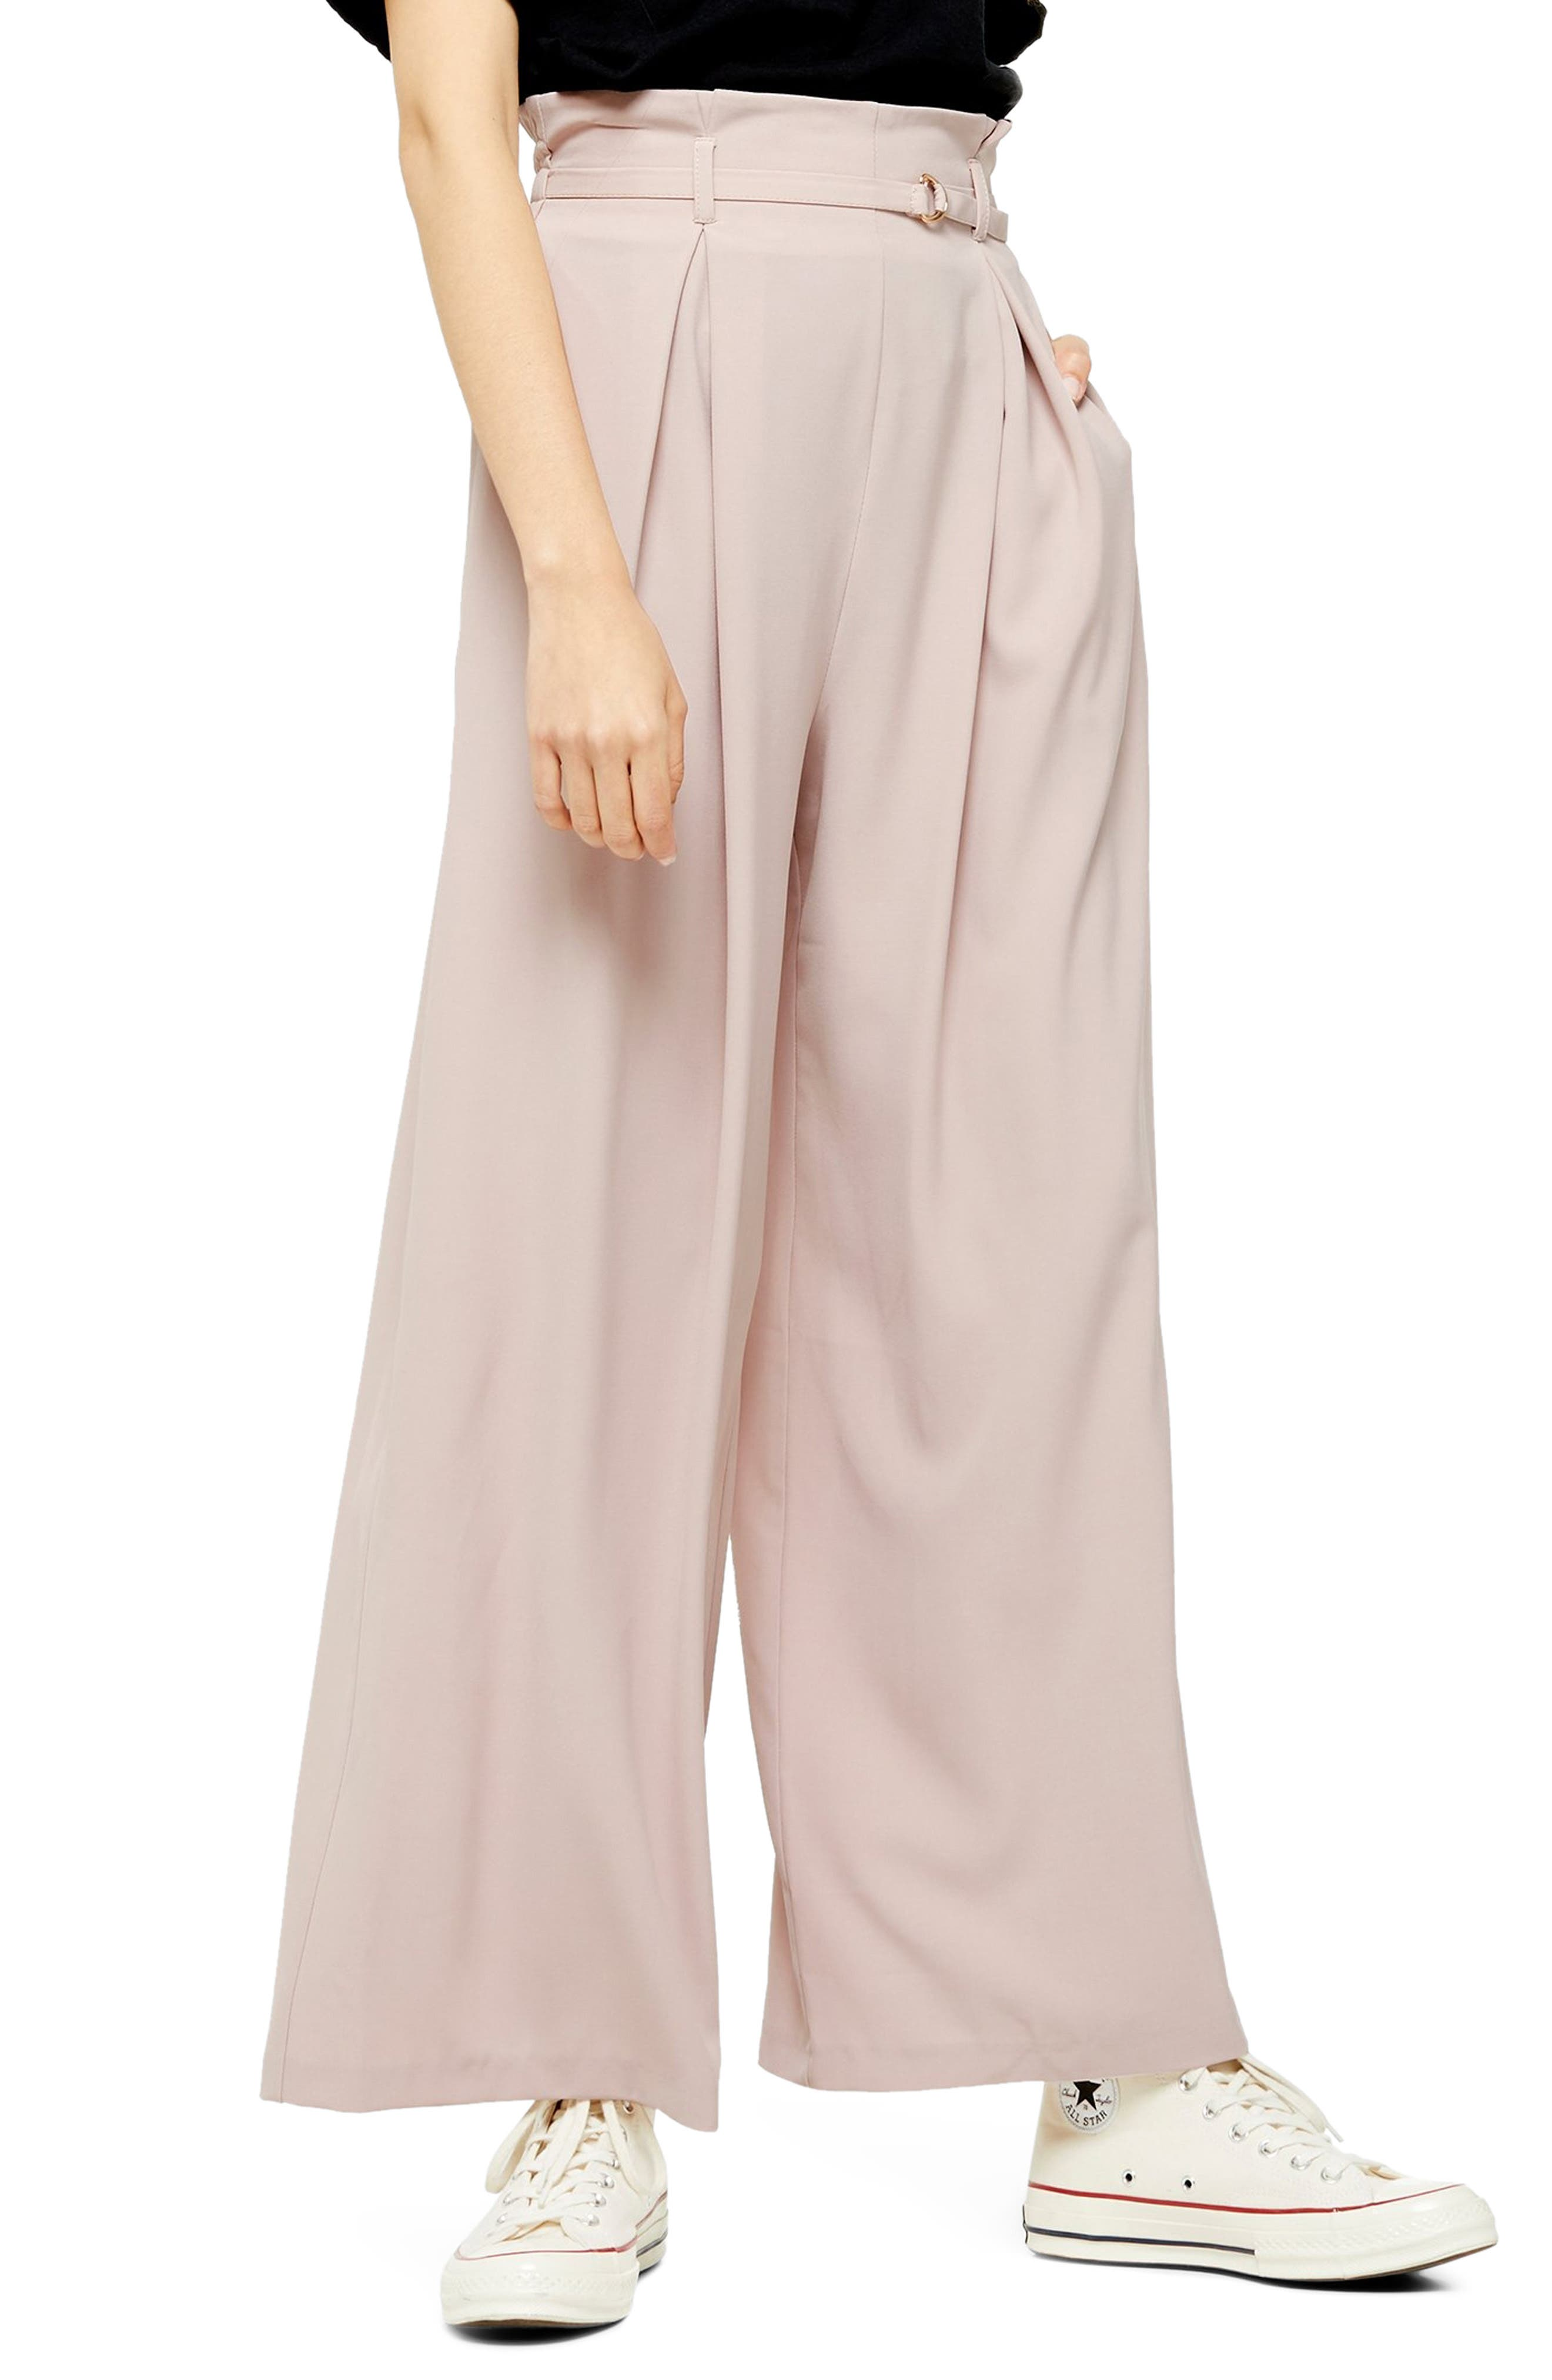 1930s Wide Leg Pants and Beach Pajamas Womens Topshop Belted Wide Leg Trousers Size 8 US fits like 6-8 - Pink $90.00 AT vintagedancer.com